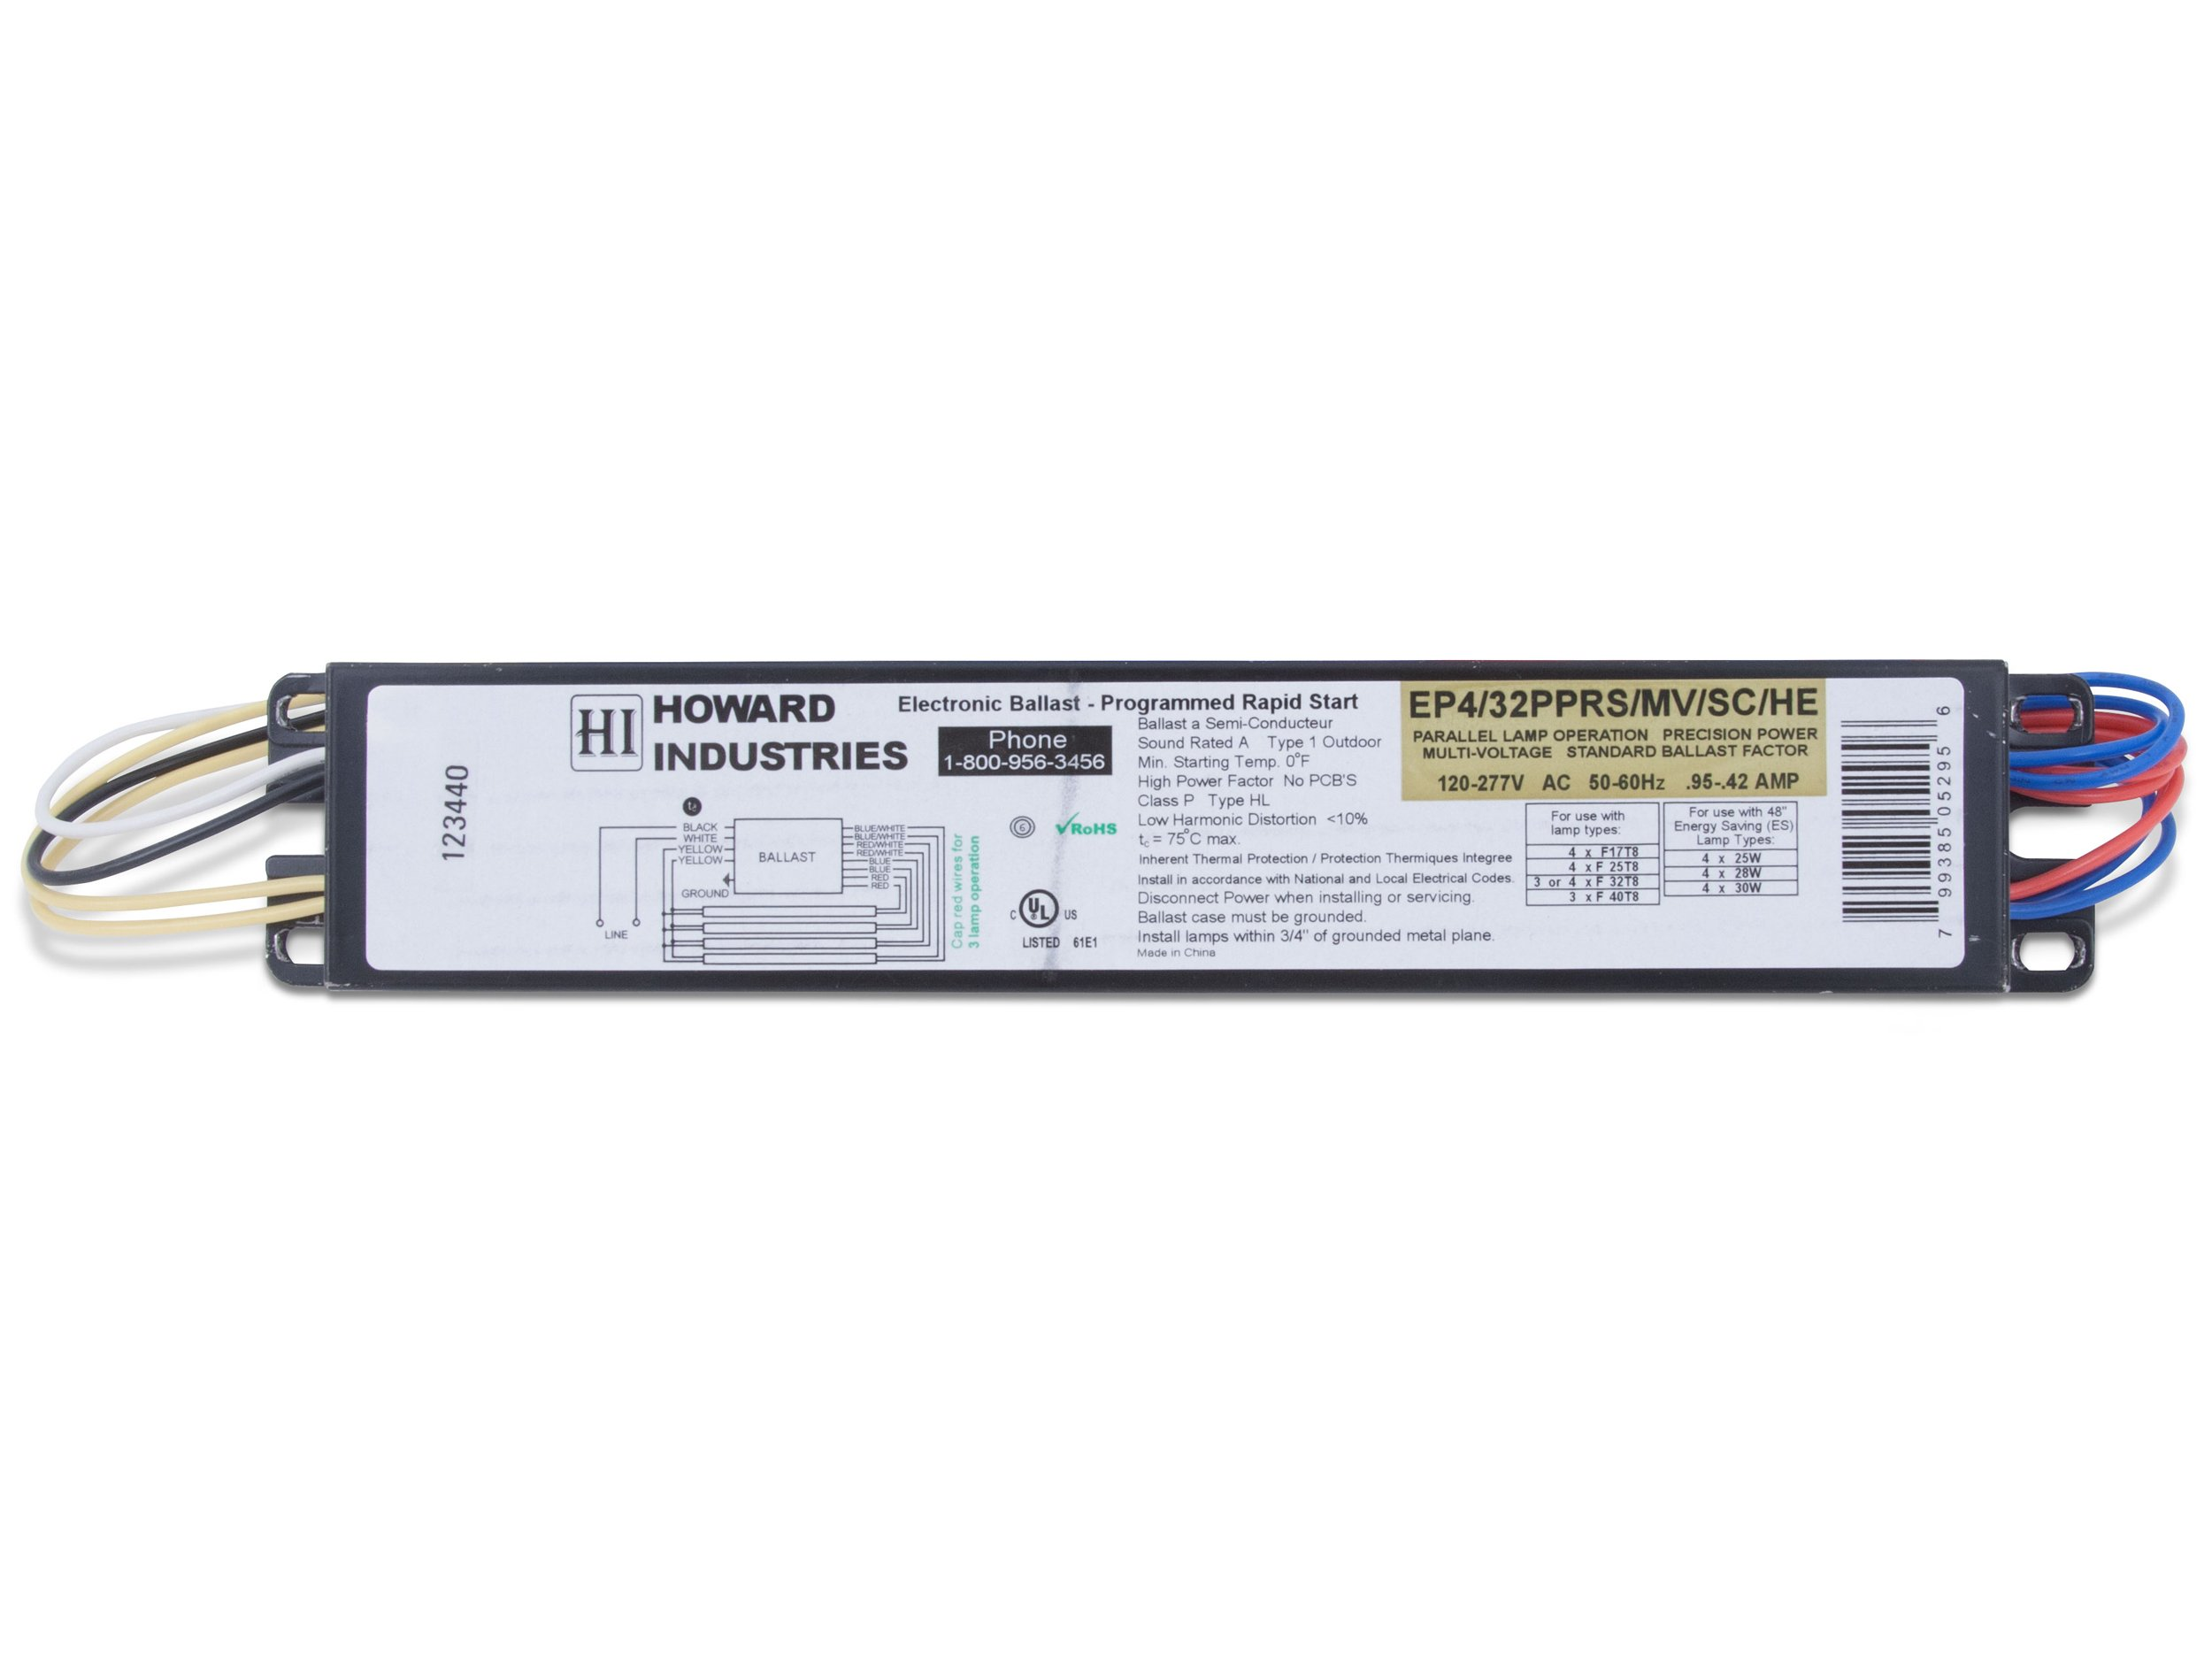 Howard Lighting EP4/32PPRS/MV/SC/HE Products 4 Lamp F32T8 Electronic Ballast